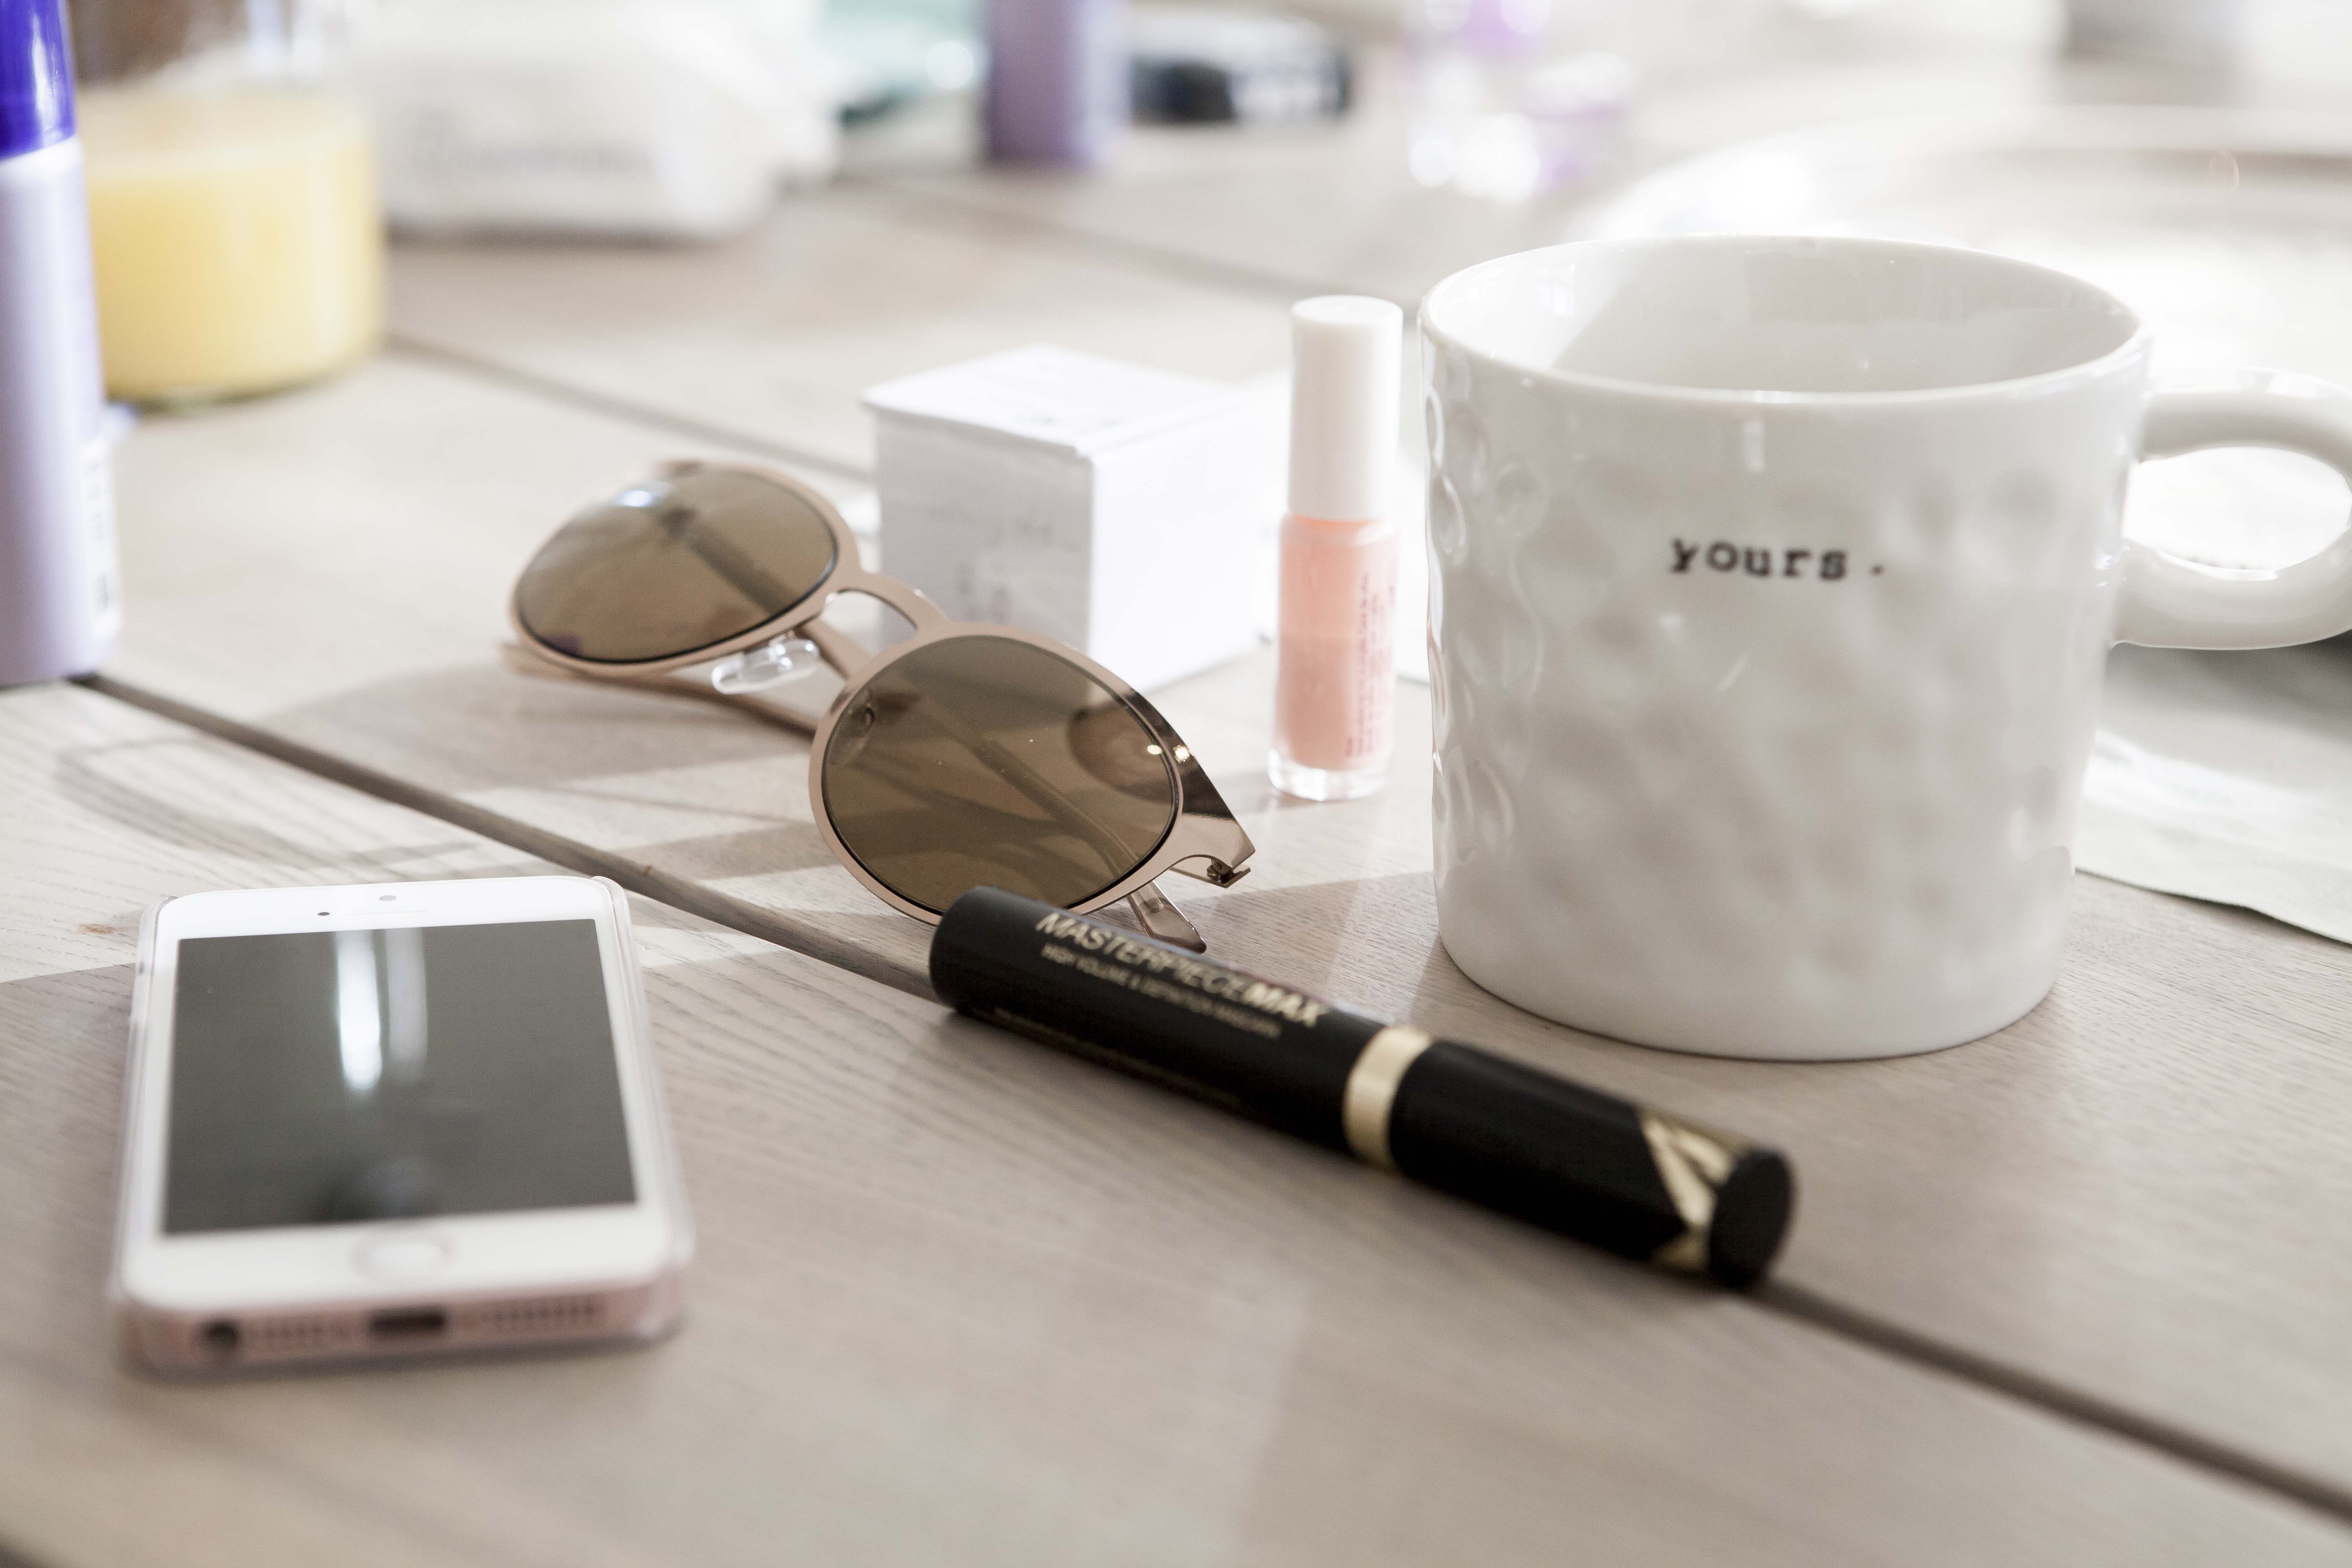 Flatlay Photography of Woman's Things · Free Stock Photo